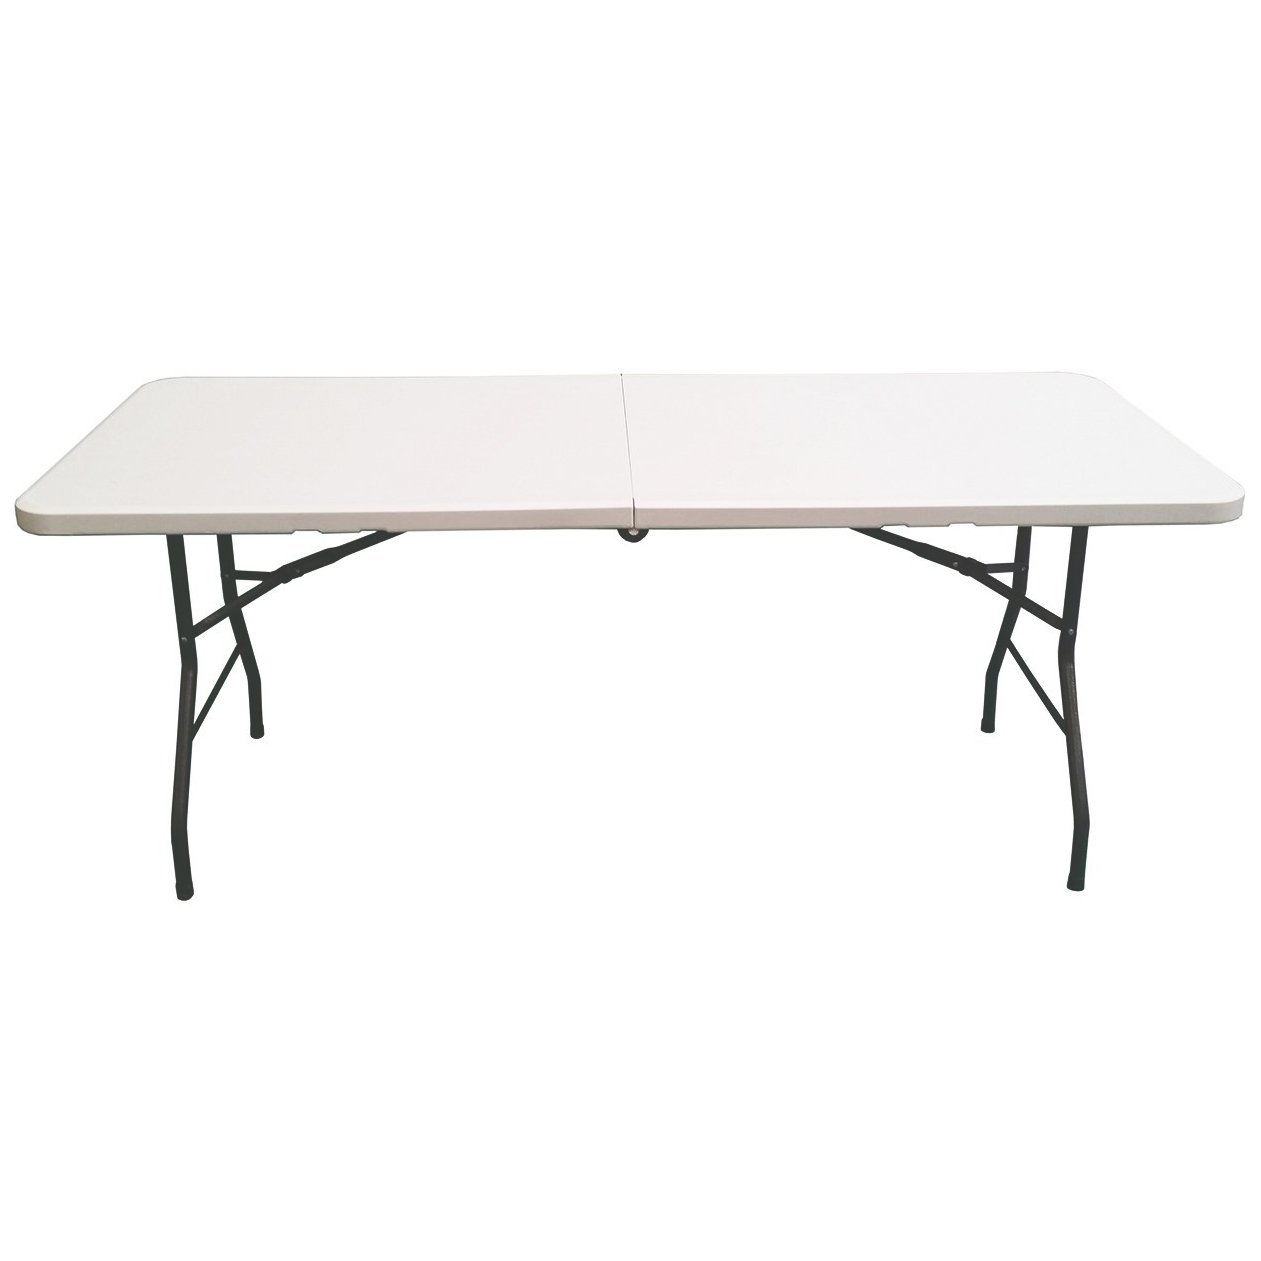 UPTO 400KG LOAD CAPACITY OYPLA 6FT HEAVY DUTY TRESTLE WHITE FOLDING BANQUET PARTY GARDEN OUTDOOR /& INDOOR CAMPING PORTABLE TABLE EXTRA STRENGTH